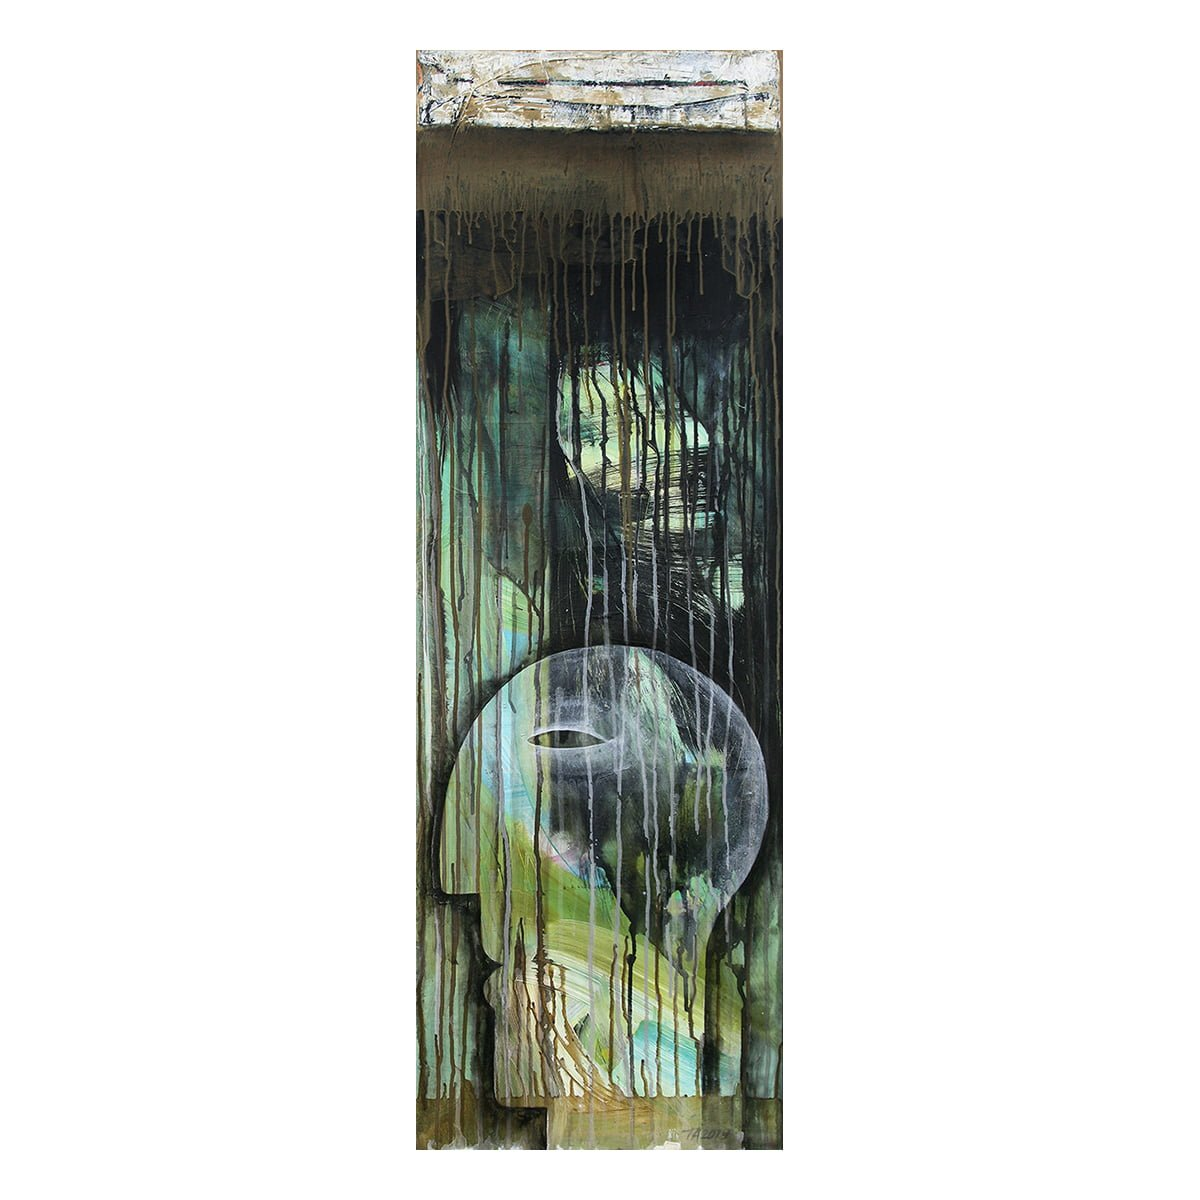 Photo of painting by Terese Andersen, 120x40, title; Skyfall